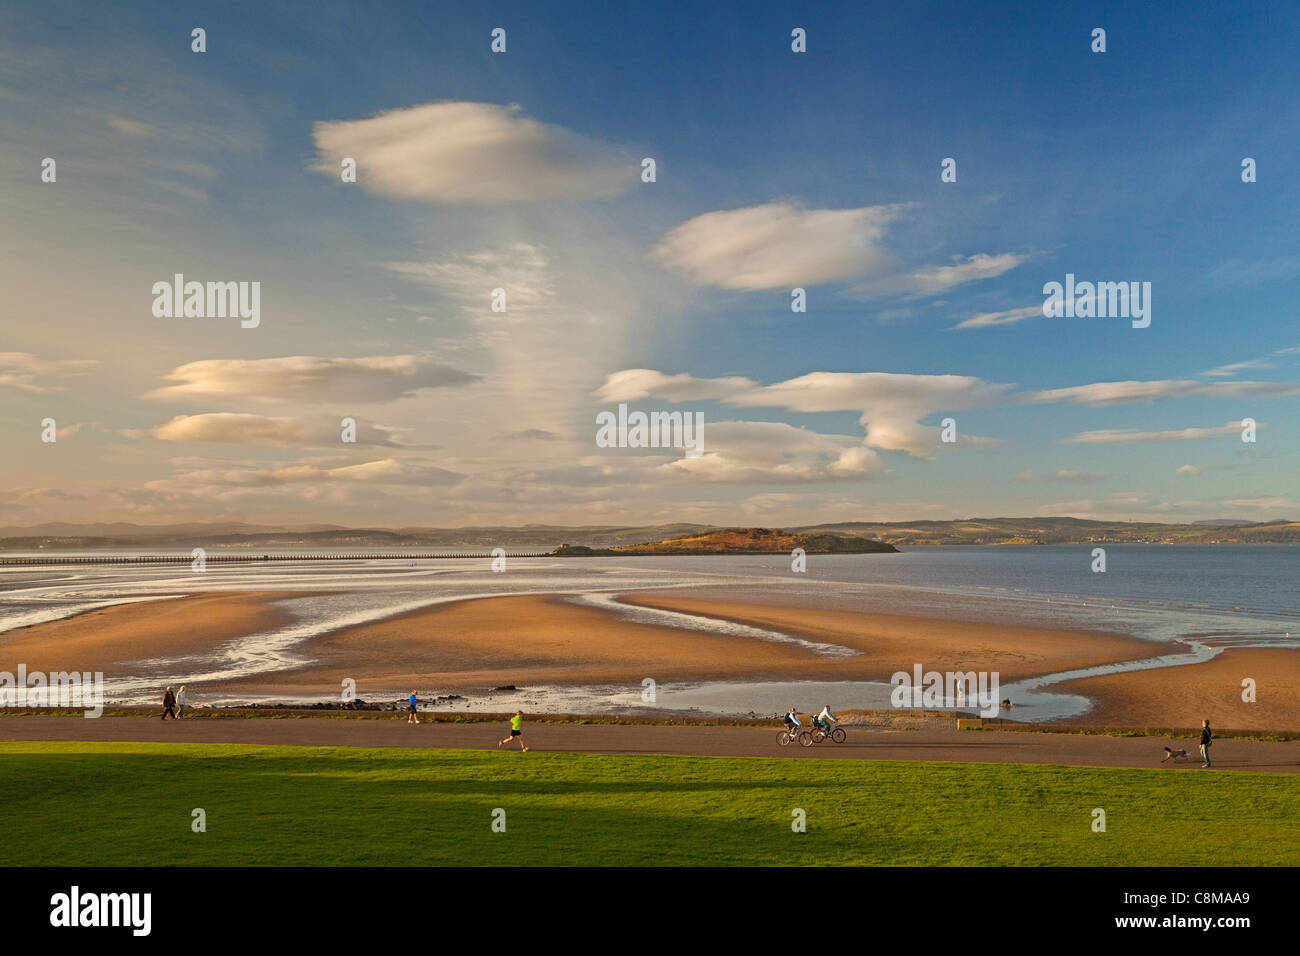 Walkers, Joggers and Cyclists on Cramond Foreshore, Edinburgh - Stock Image